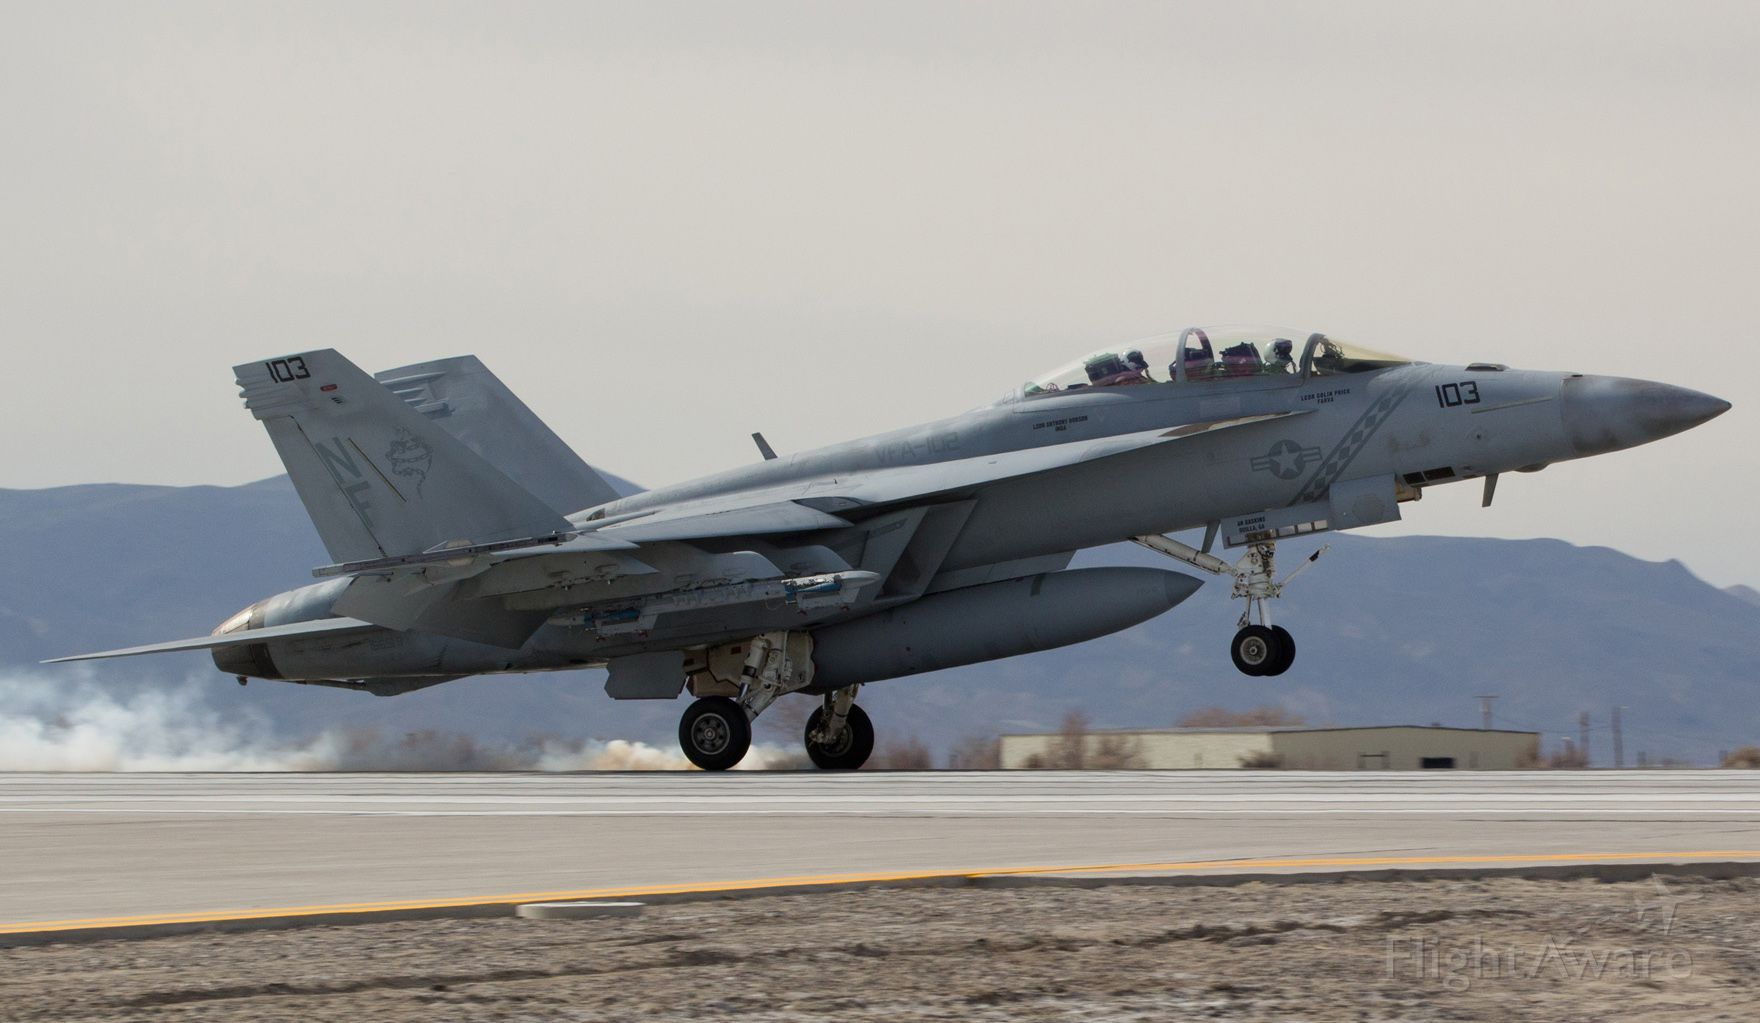 16-6918 — - An F/A-18F Super Hornet assigned to the Strike Fighter Sqdn 102 (VFA-102) Diamondbacks at NAF Atsugi touches down at NAS Fallon.